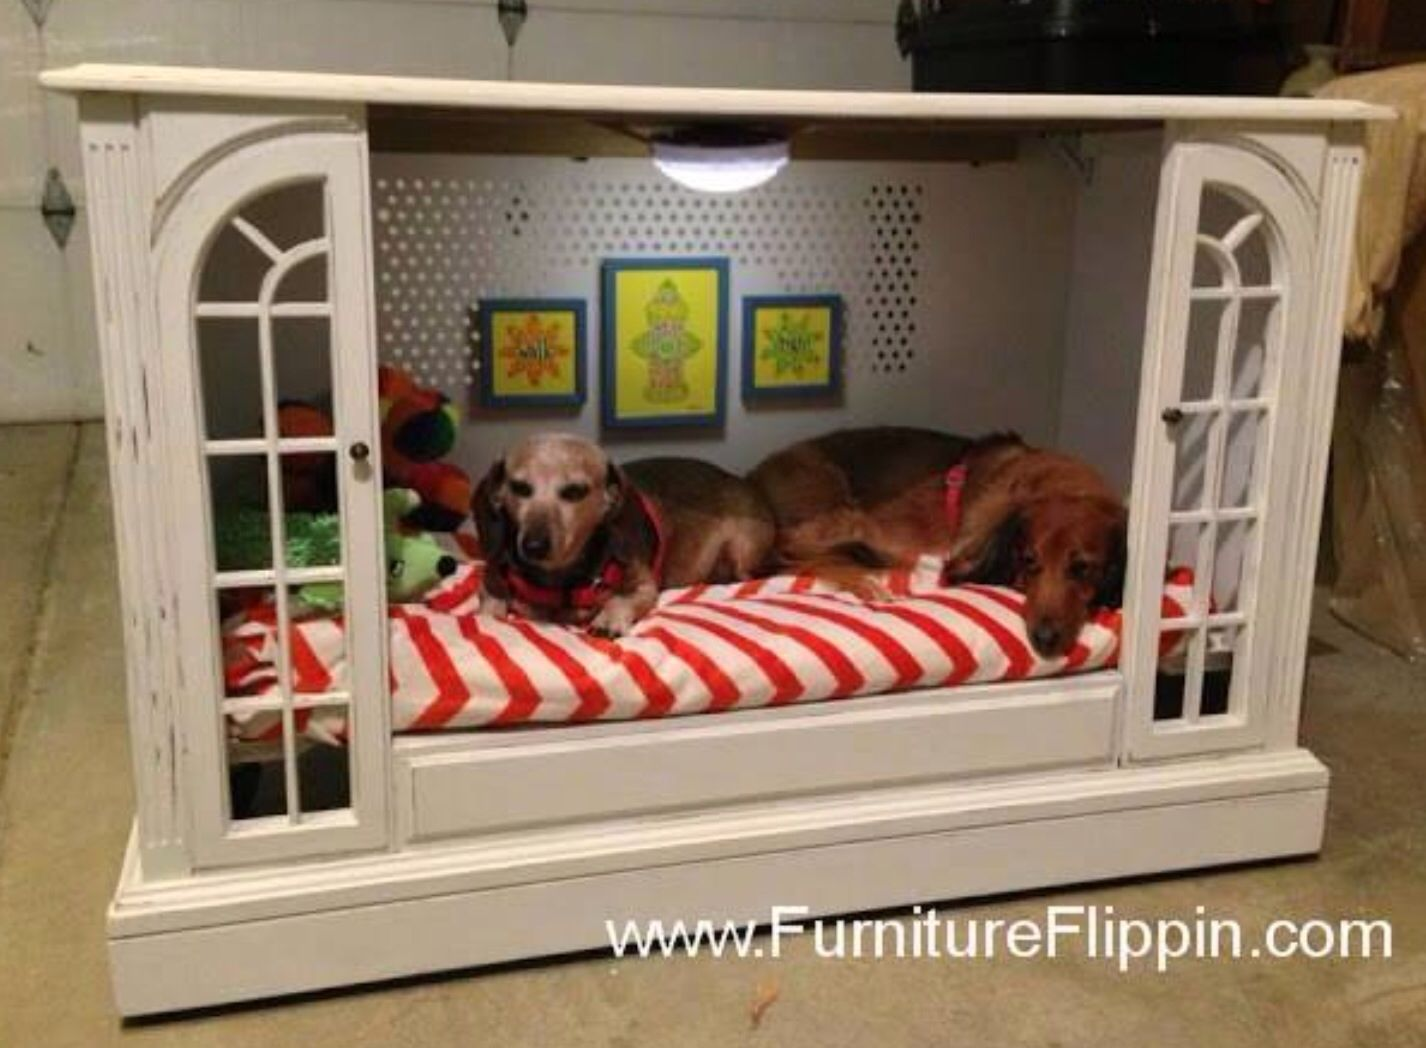 Cute Dog House Bed Made From Old Console Tv